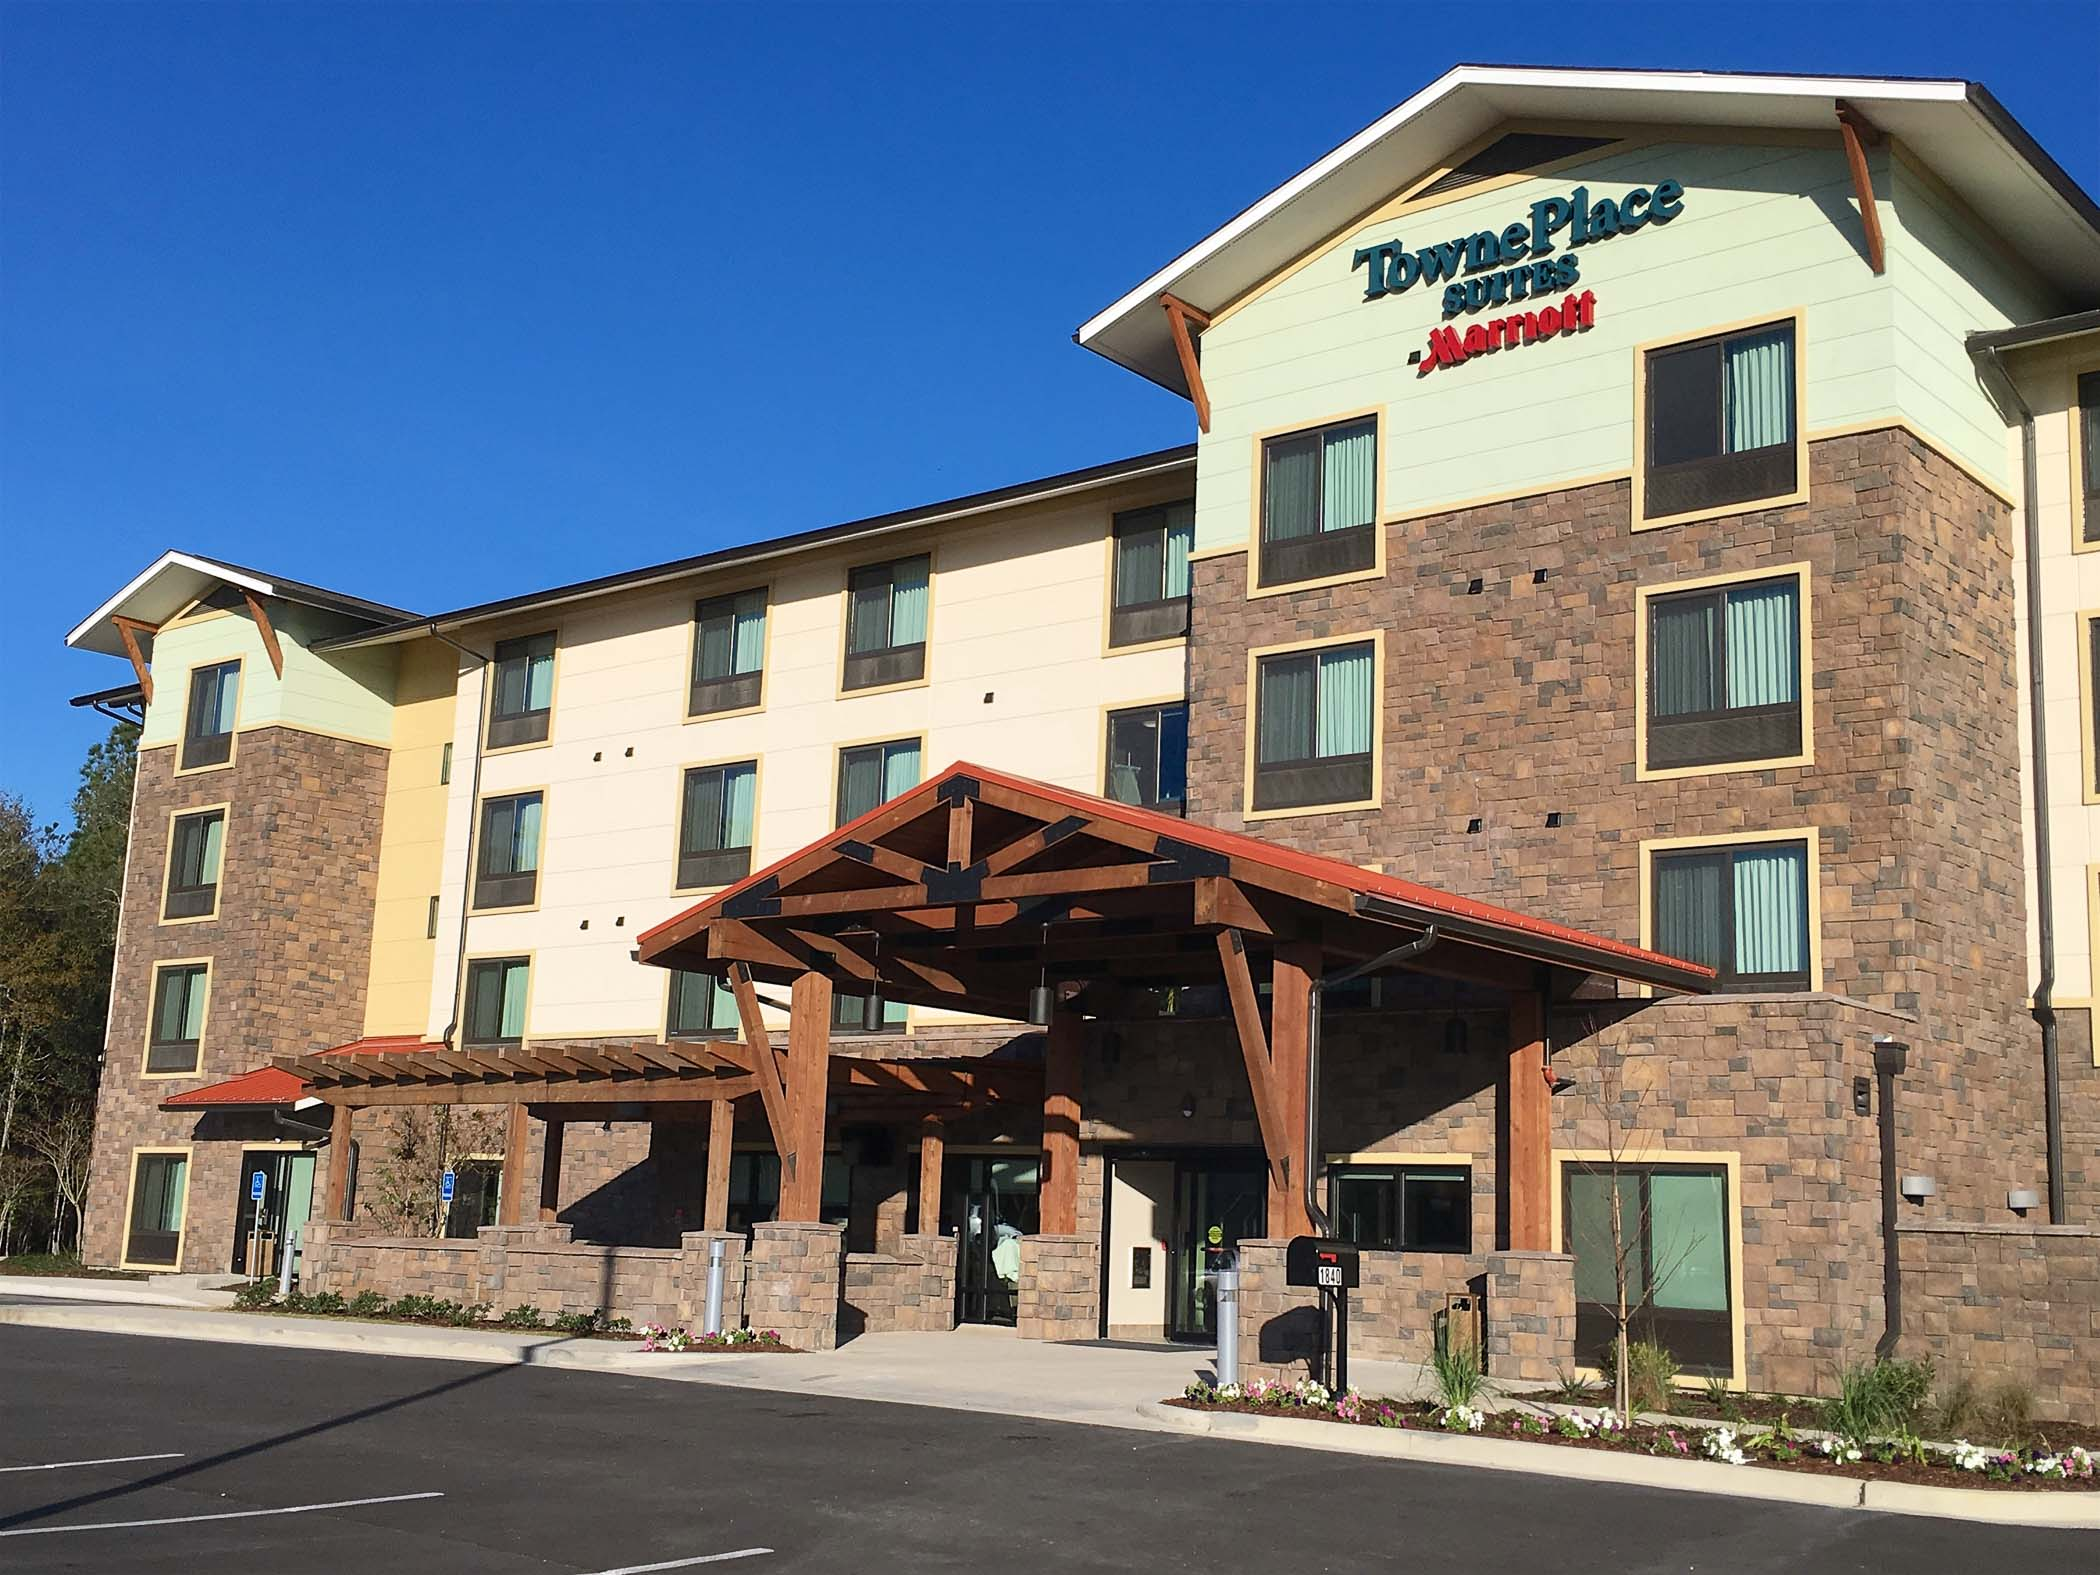 TownePlace Suites Slidell, Louisiana